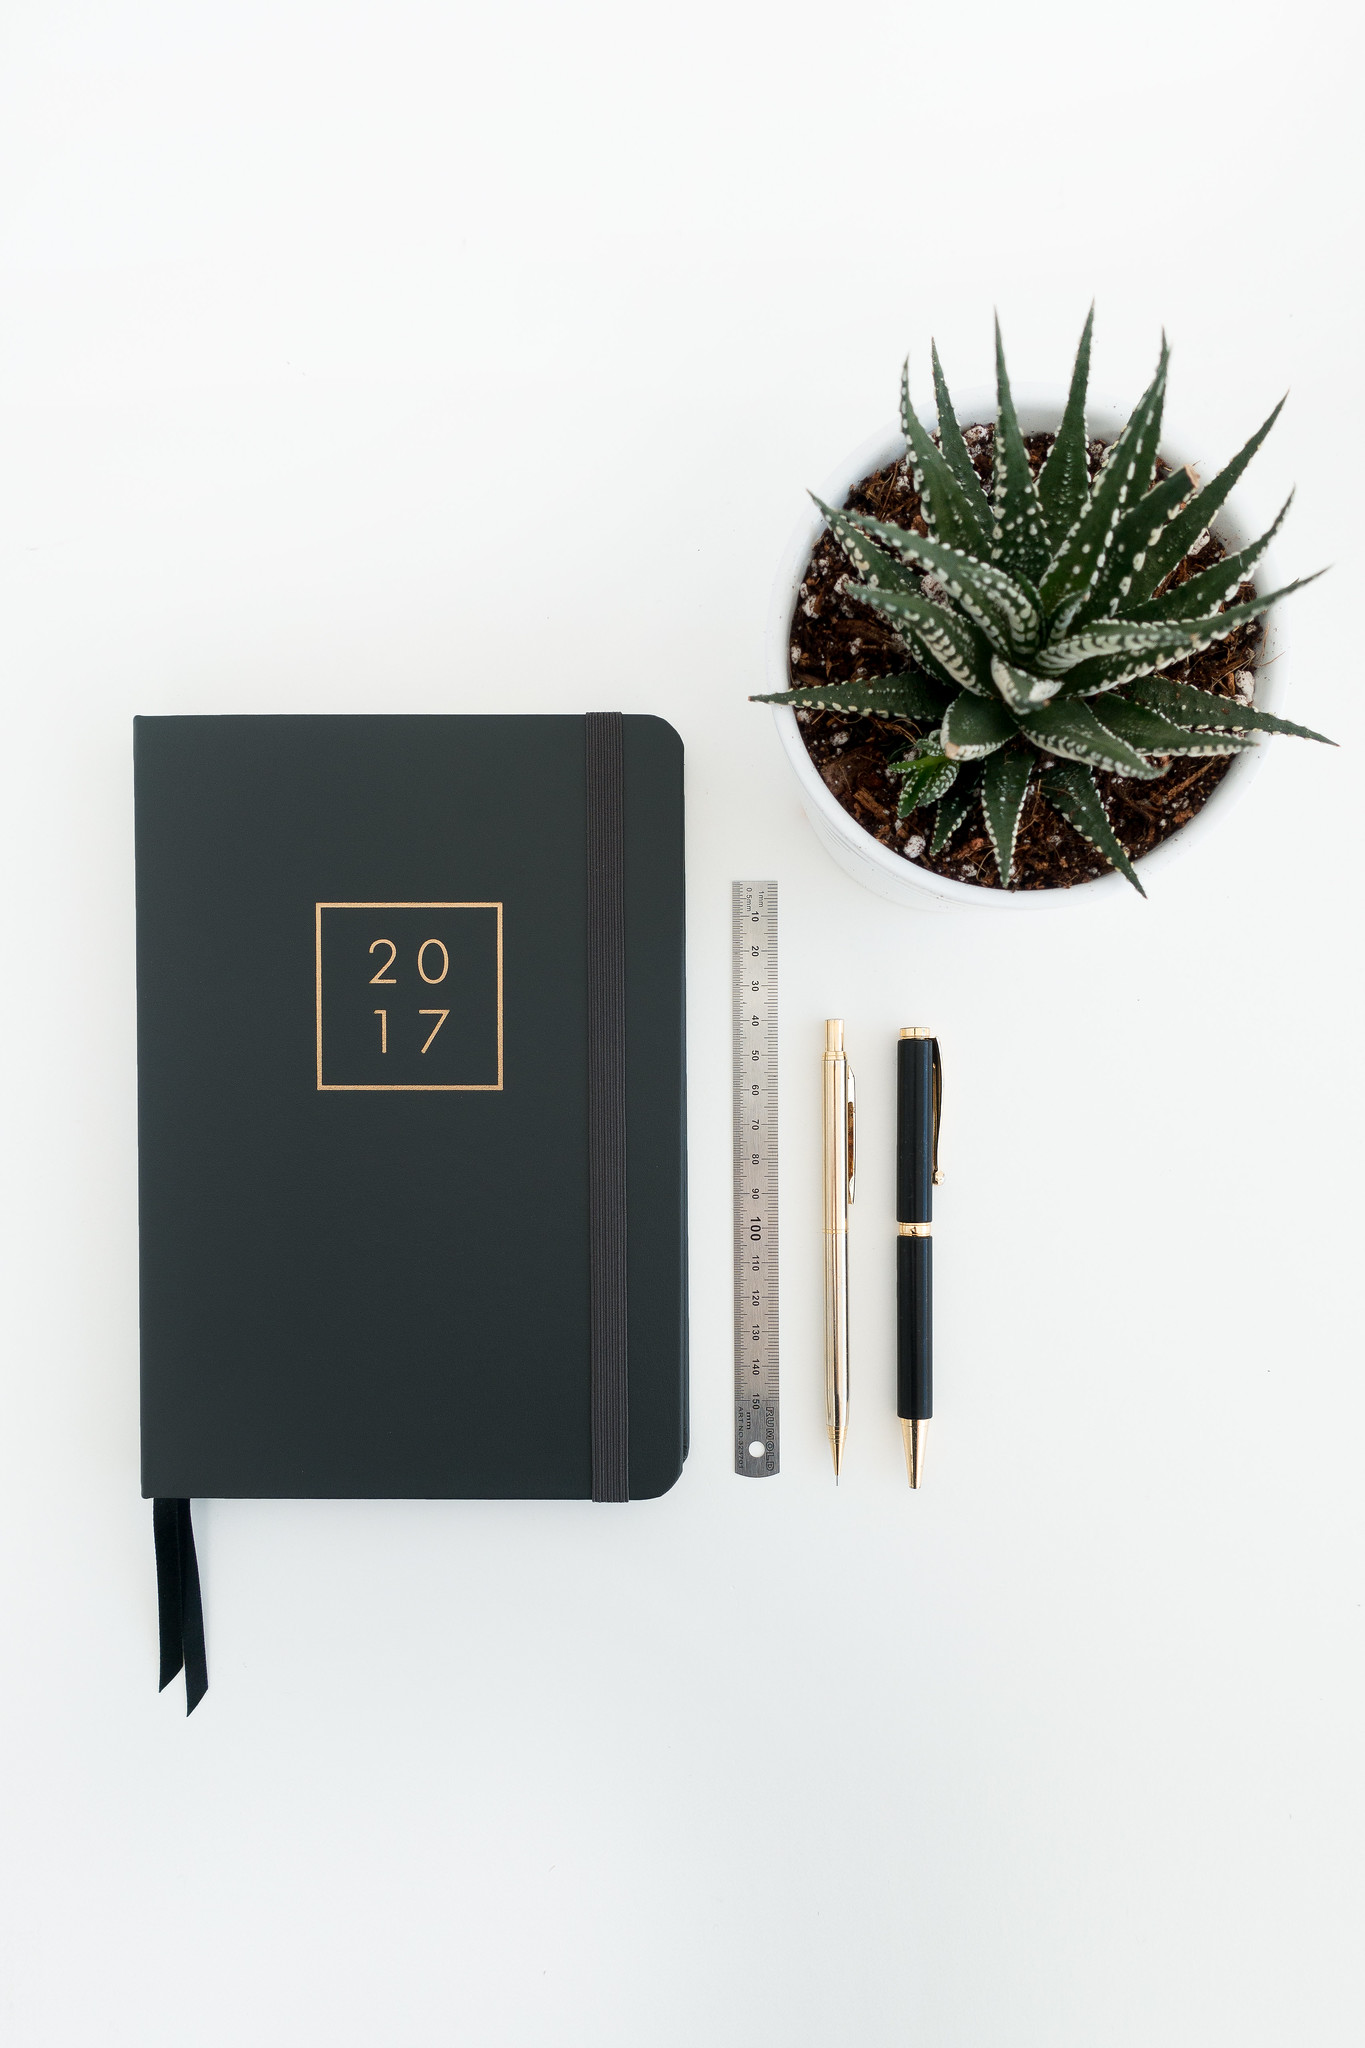 How I Use My Planner and 3 Tips For Effective Planning